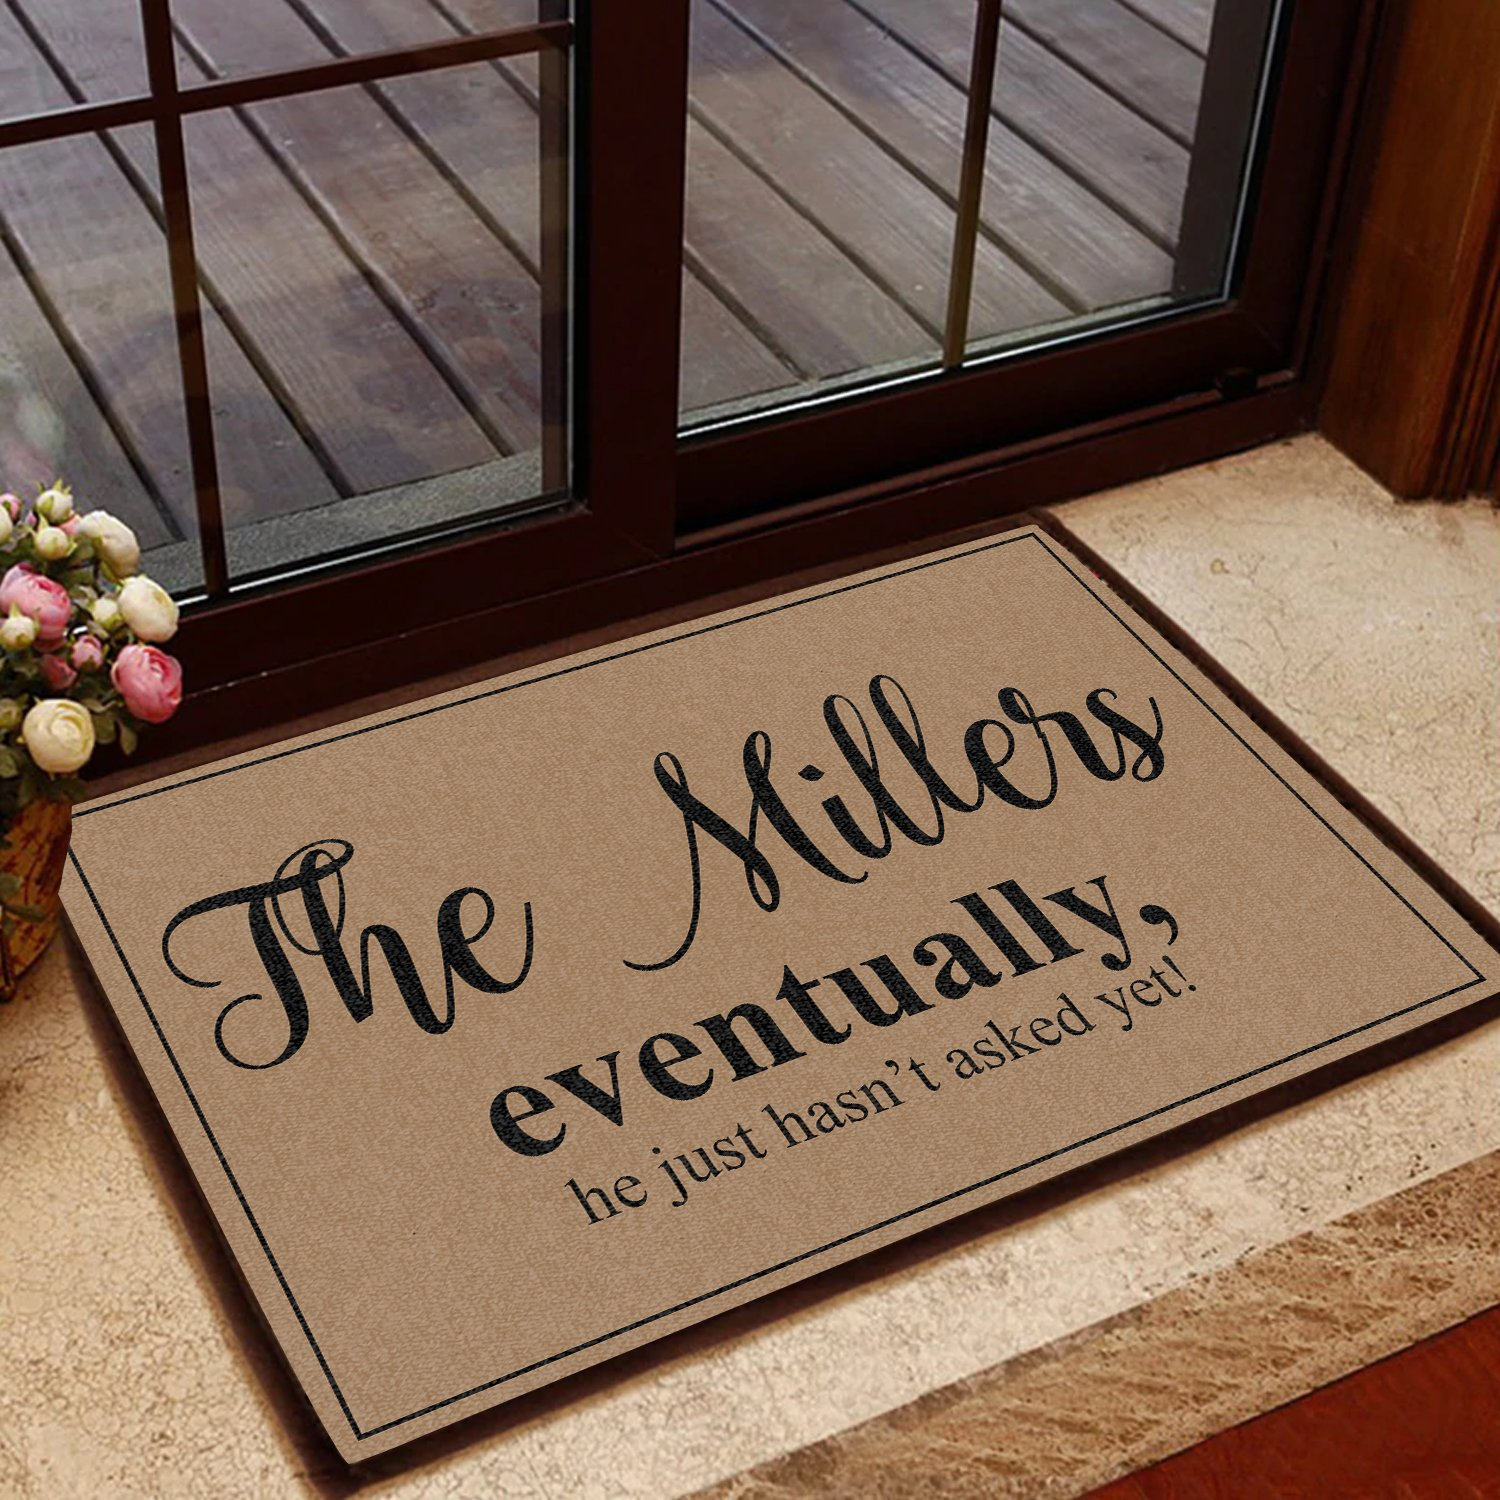 the millers eventually he just hasnt asked yet doormat 2